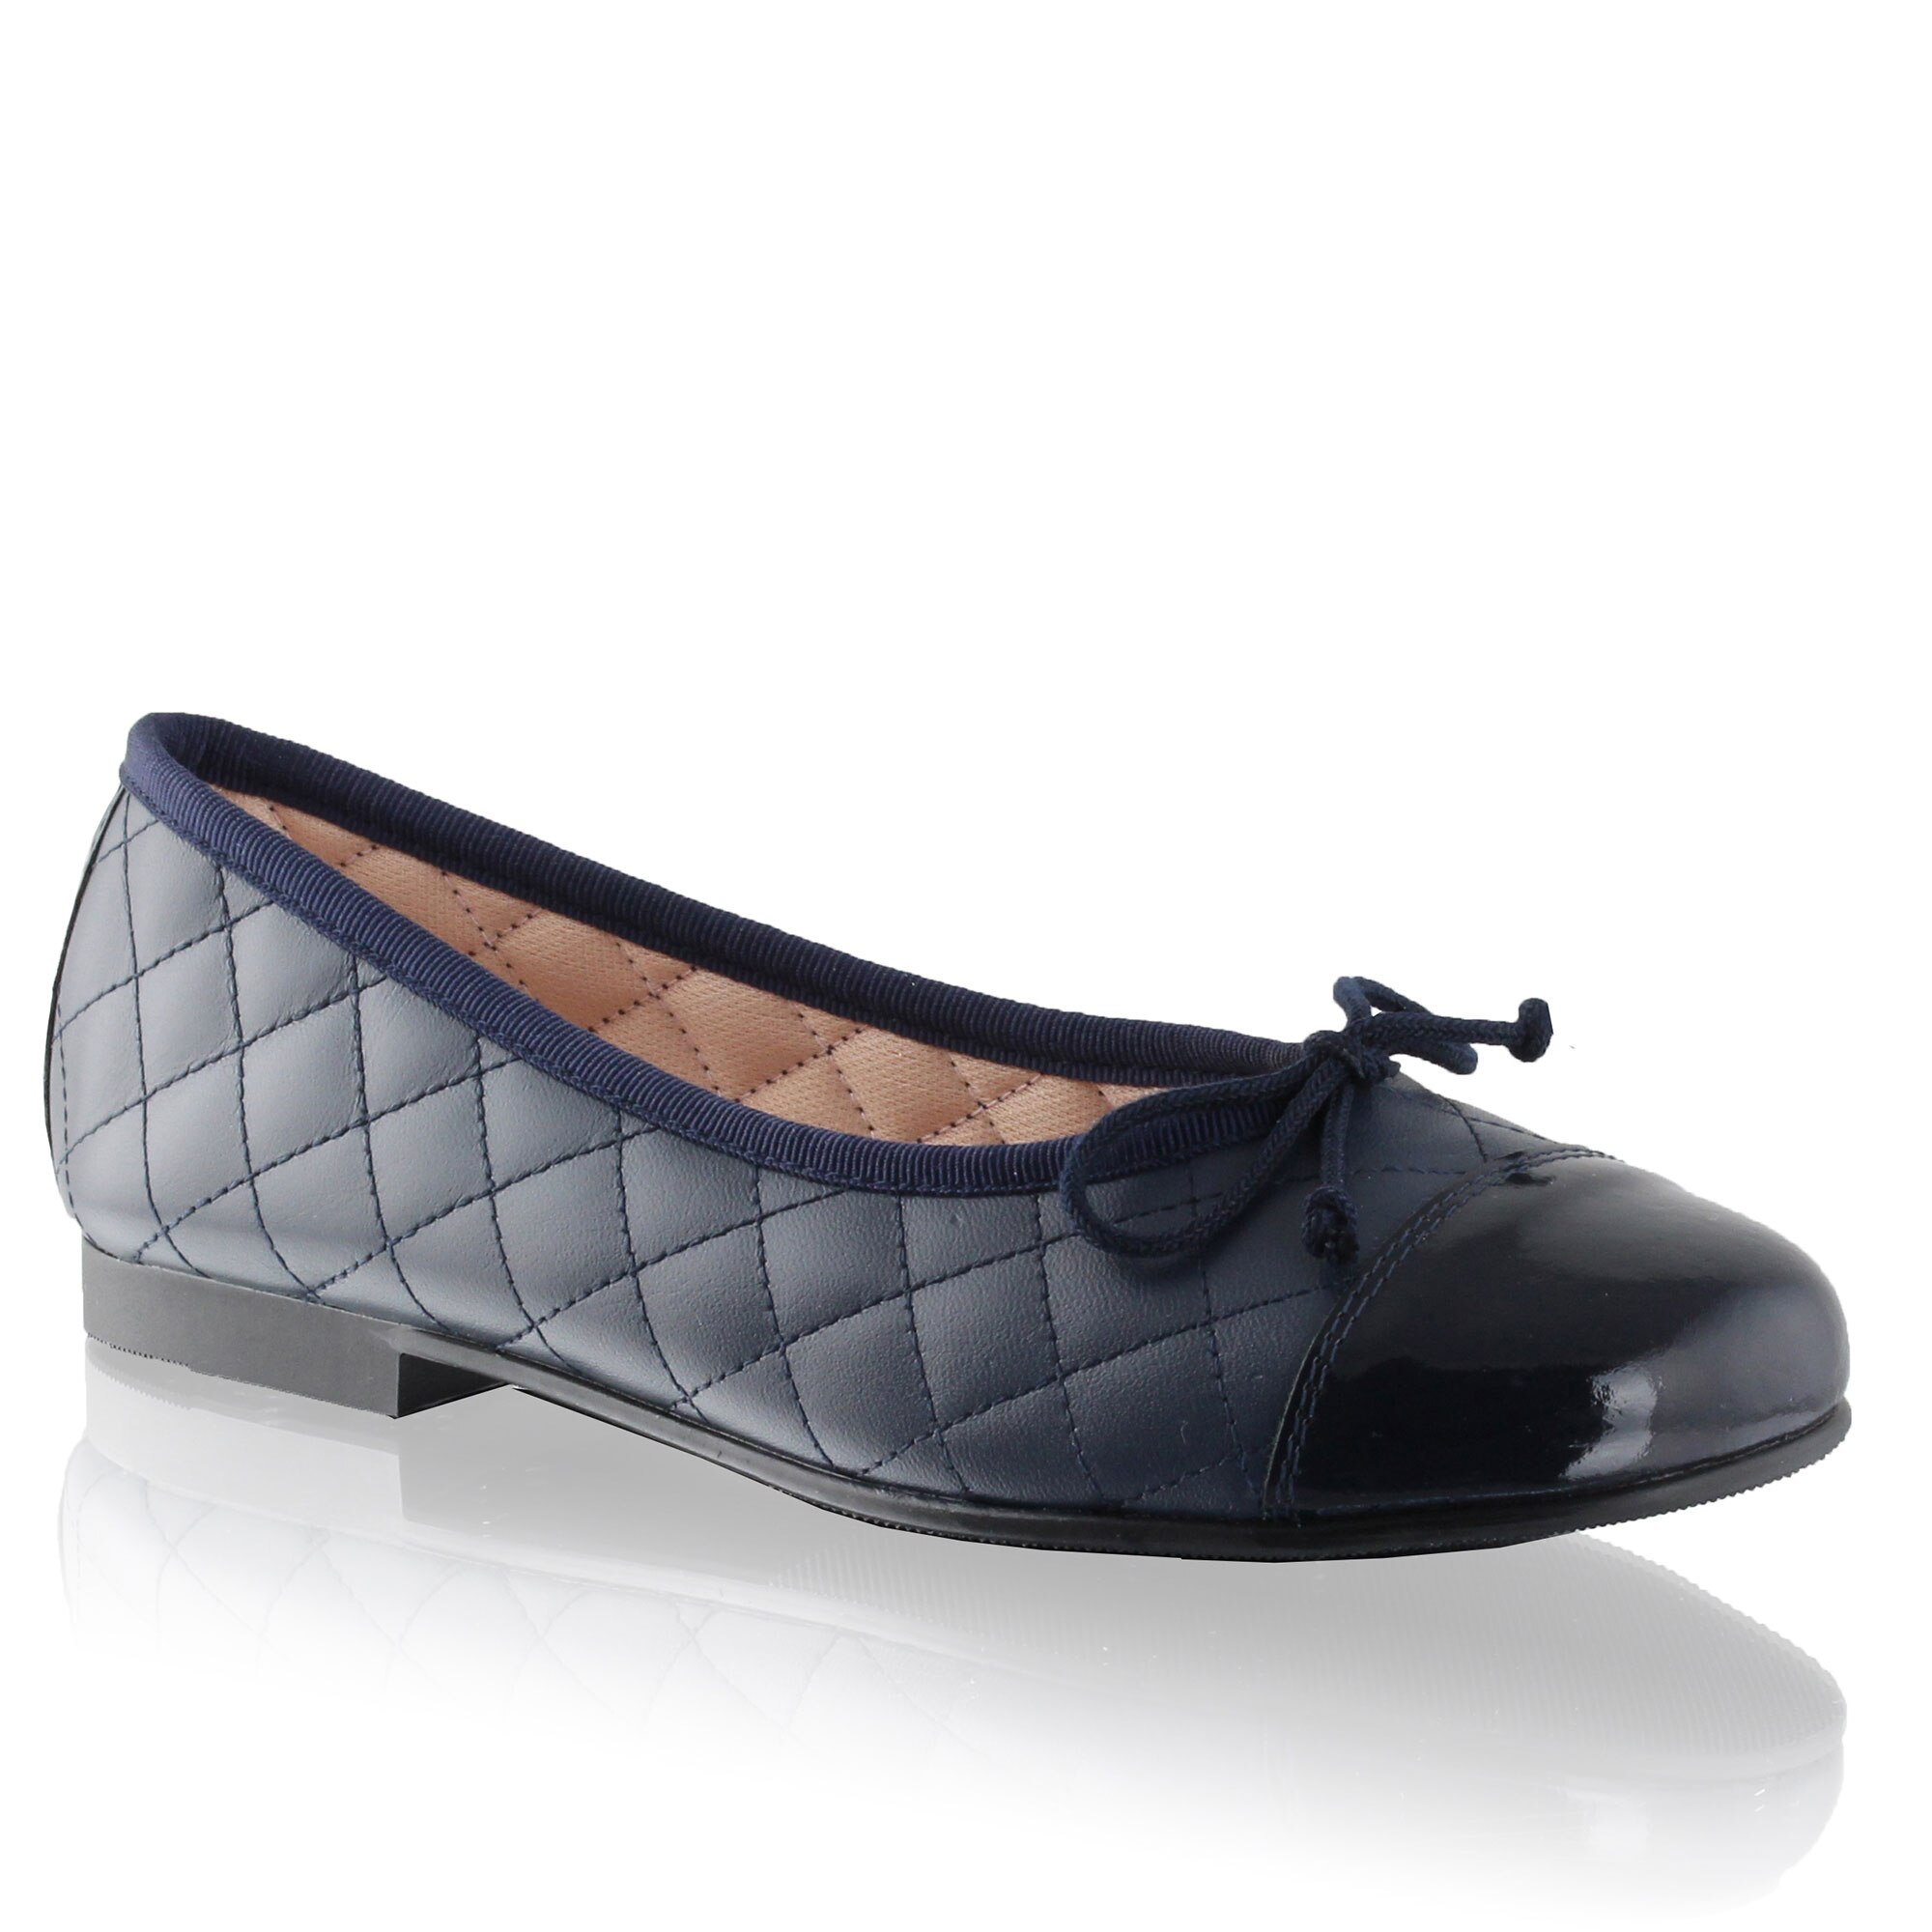 Russell and Bromley Q BALLET Quilted Ballerina